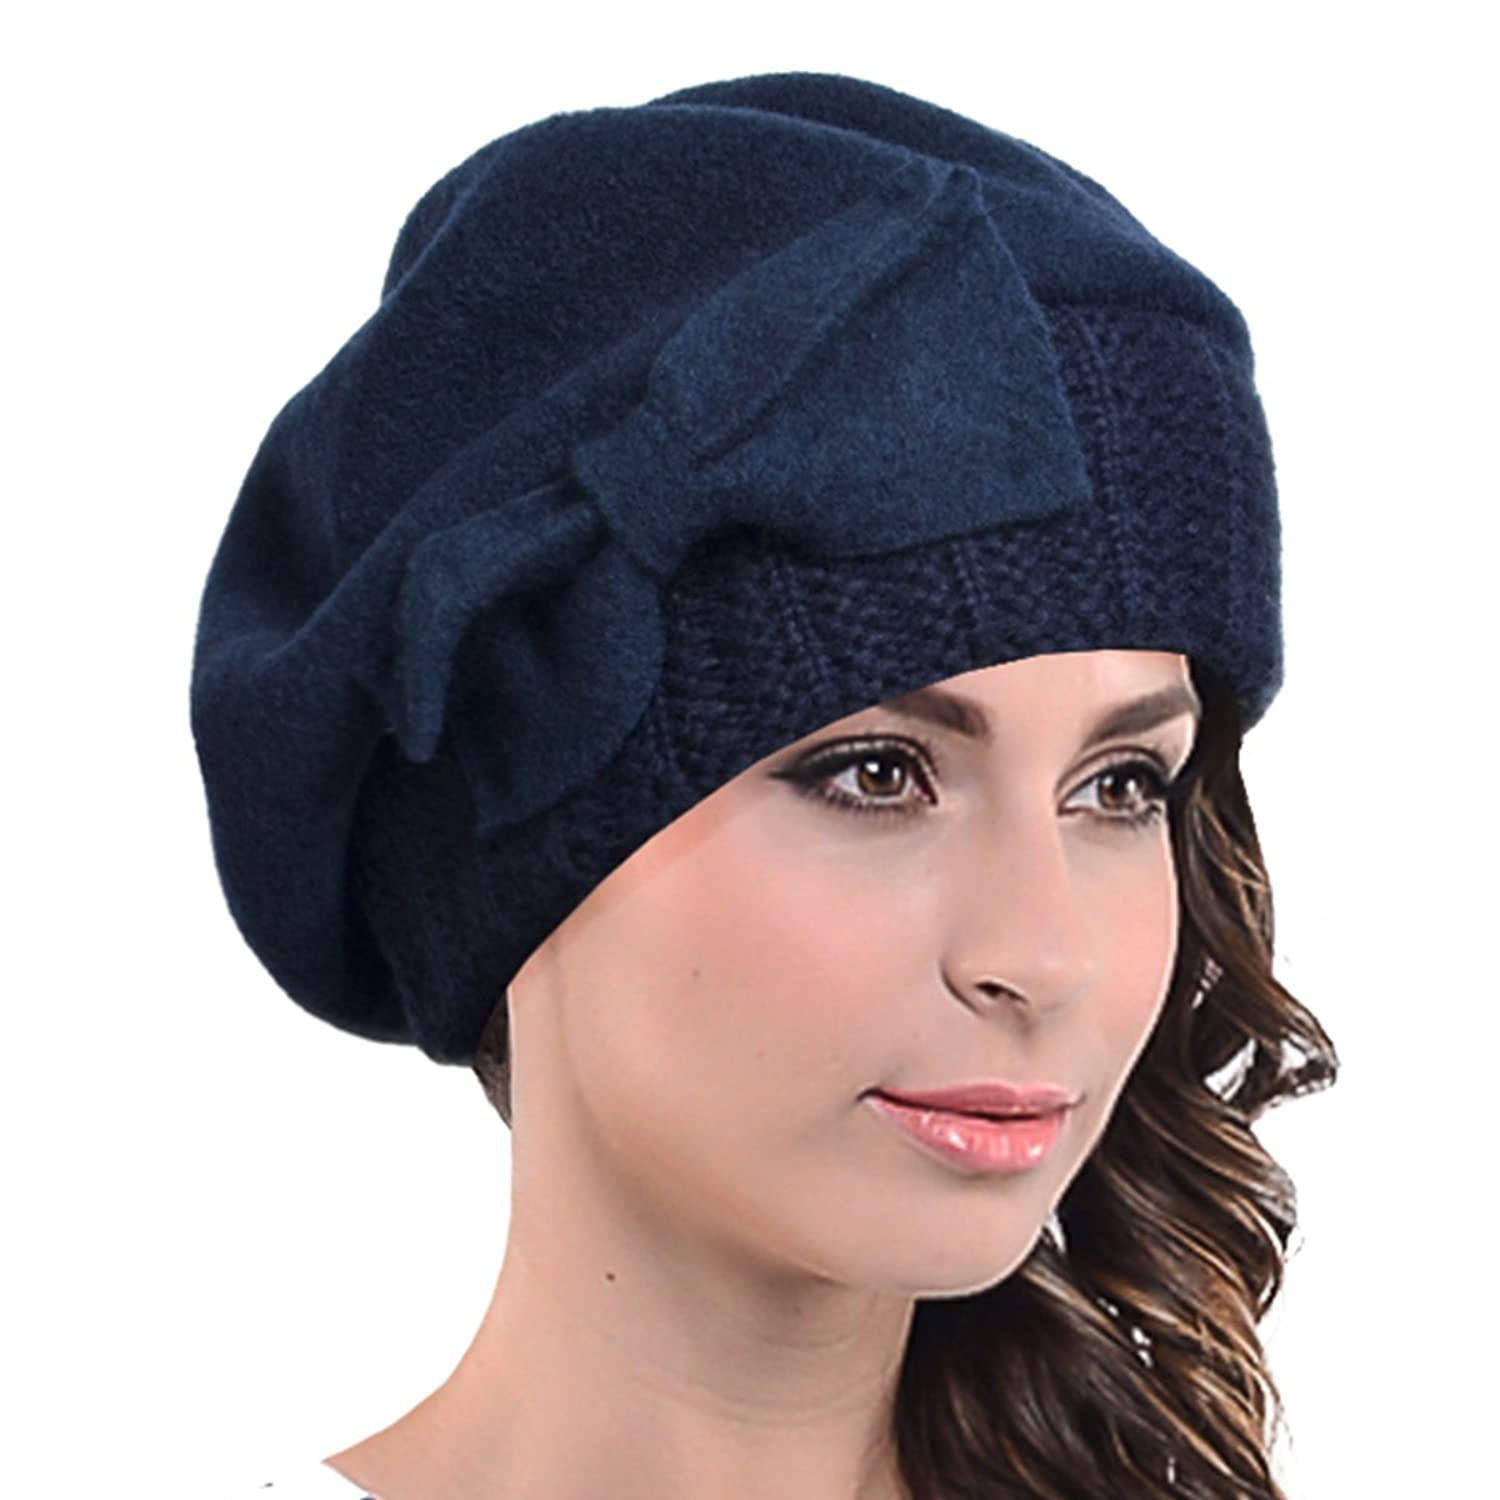 Shop 1950s Hair Accessories Lady French Beret Wool Beret Chic Beanie Winter Hat Jf-br034 $21.99 AT vintagedancer.com